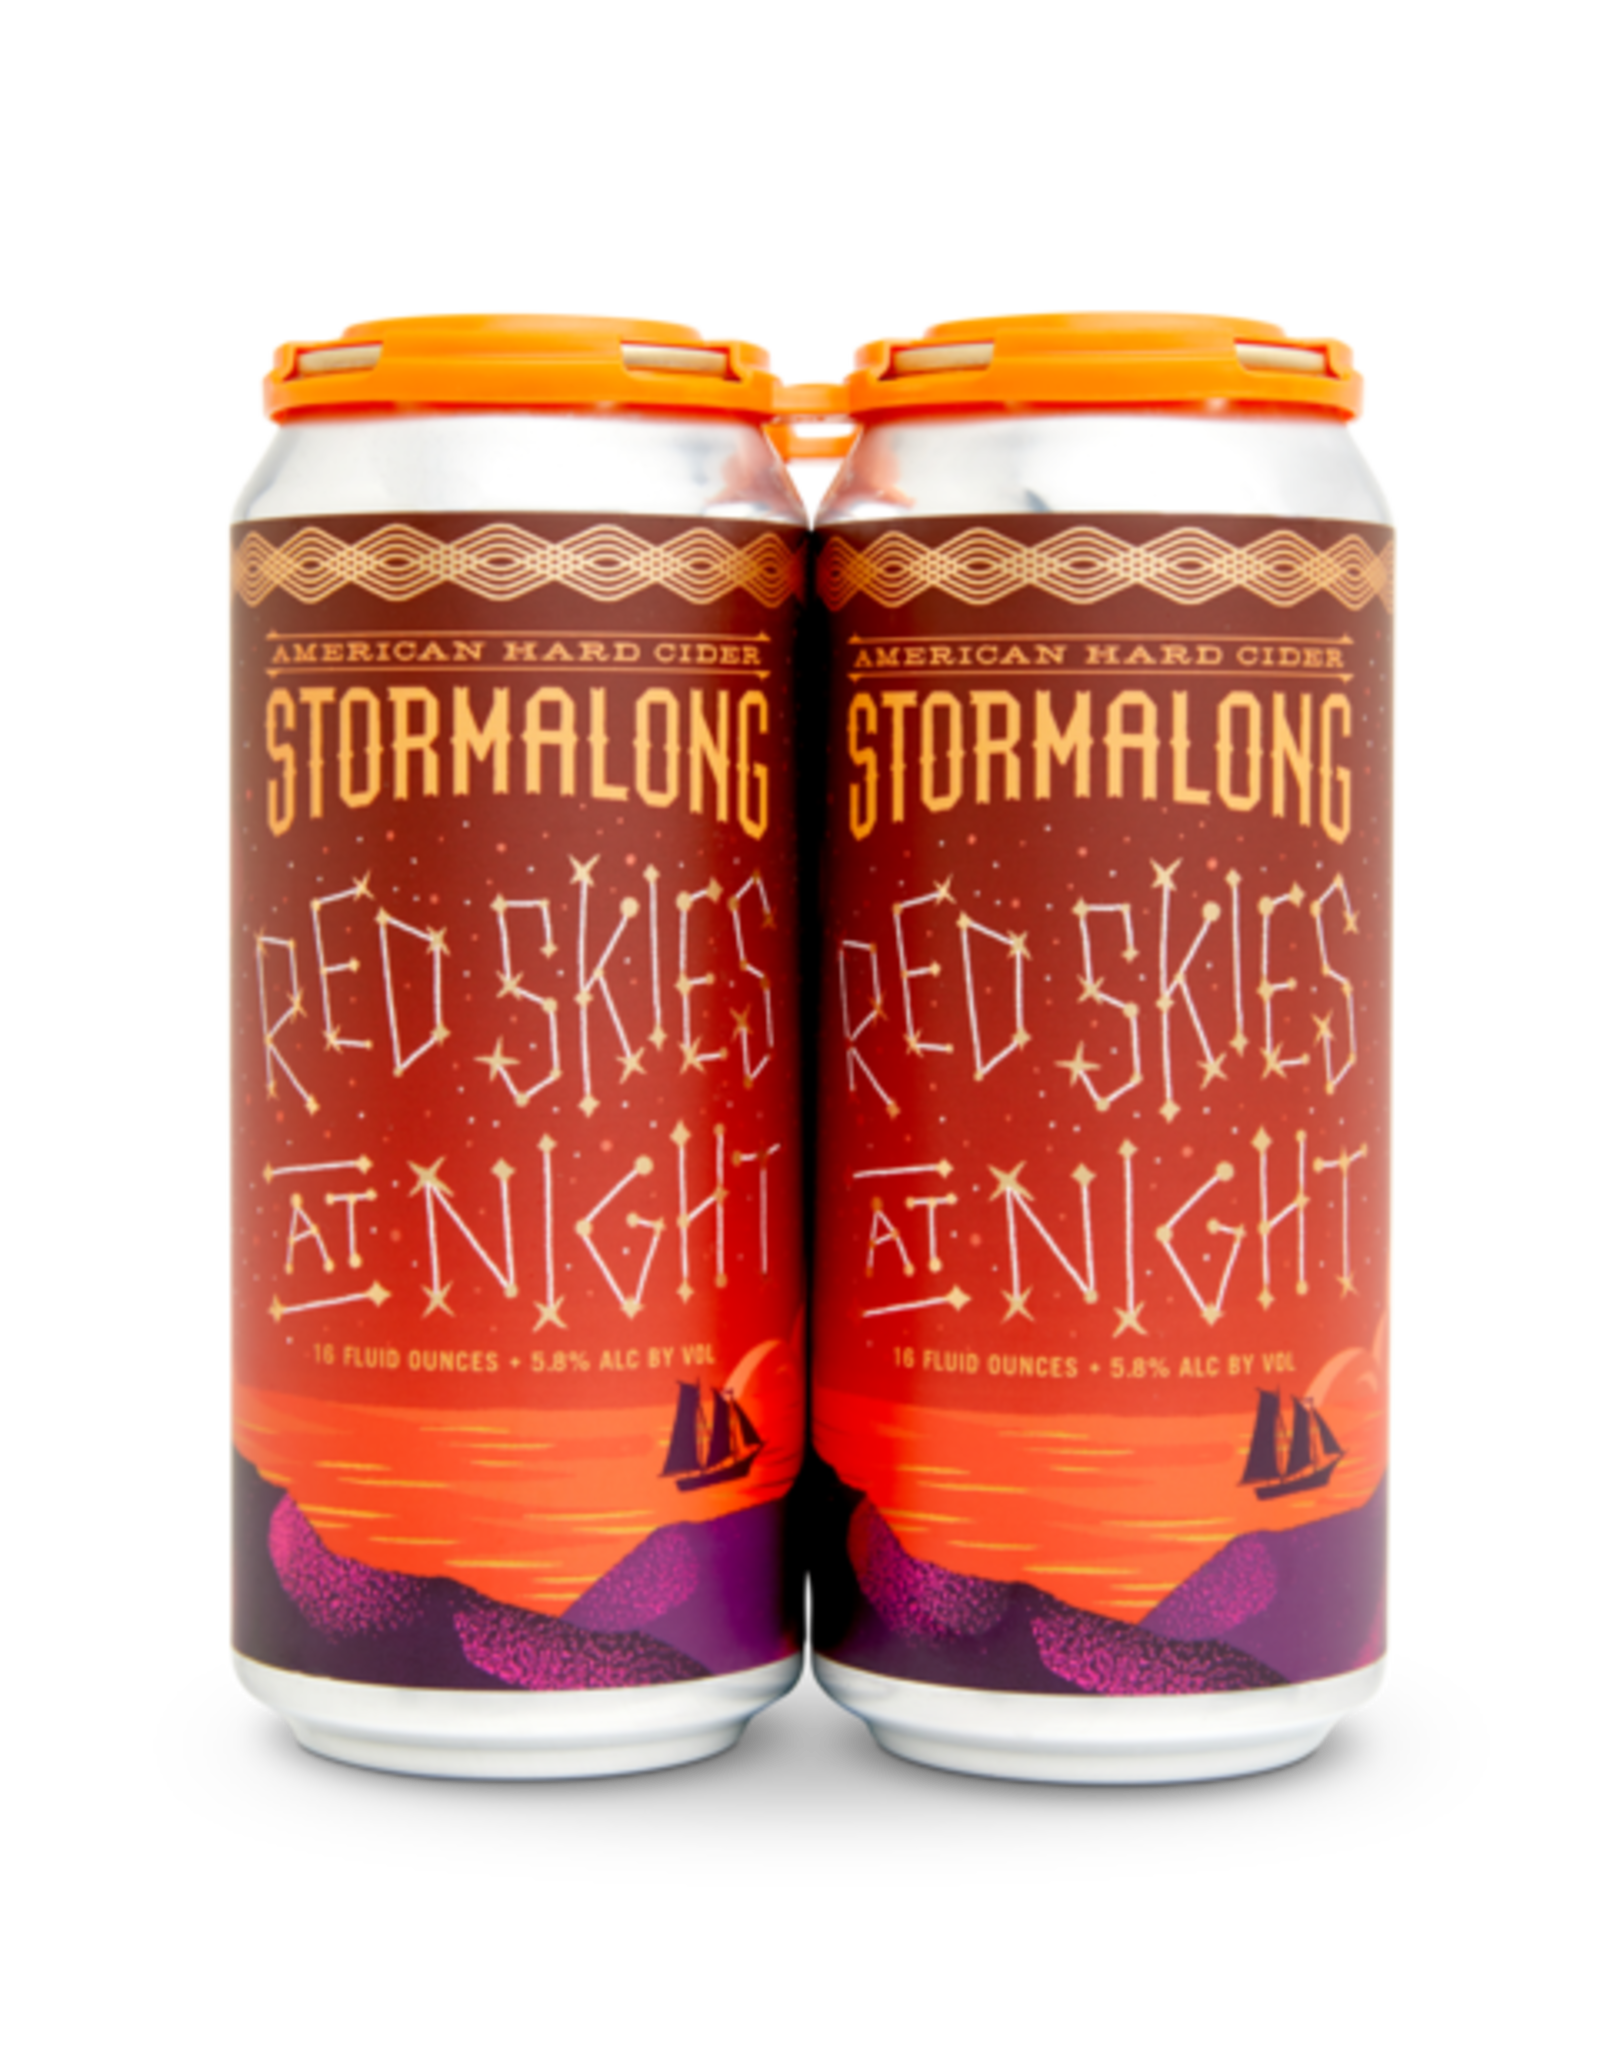 Stormalong Cider 'Red Skies at Night' 4pk